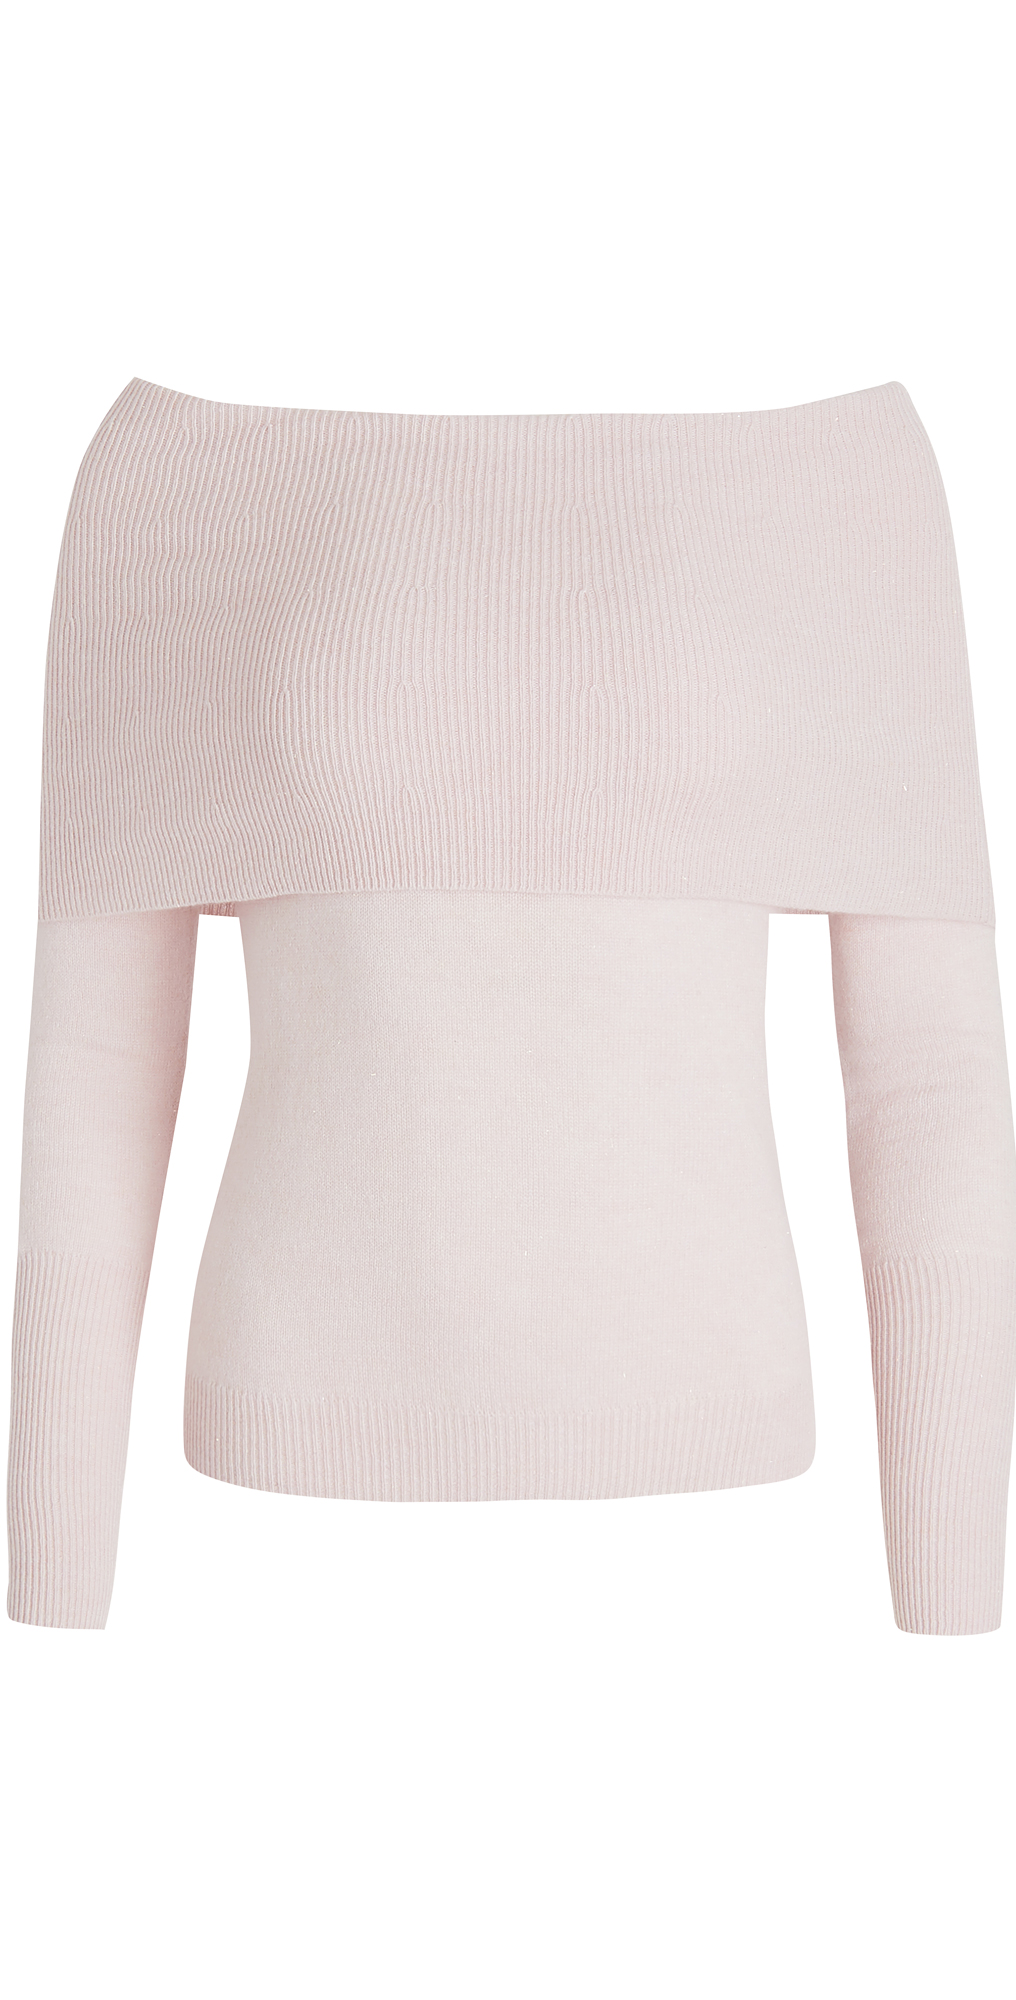 Autumn Cashmere Angelina Off Shoulder Cashmere Sweater